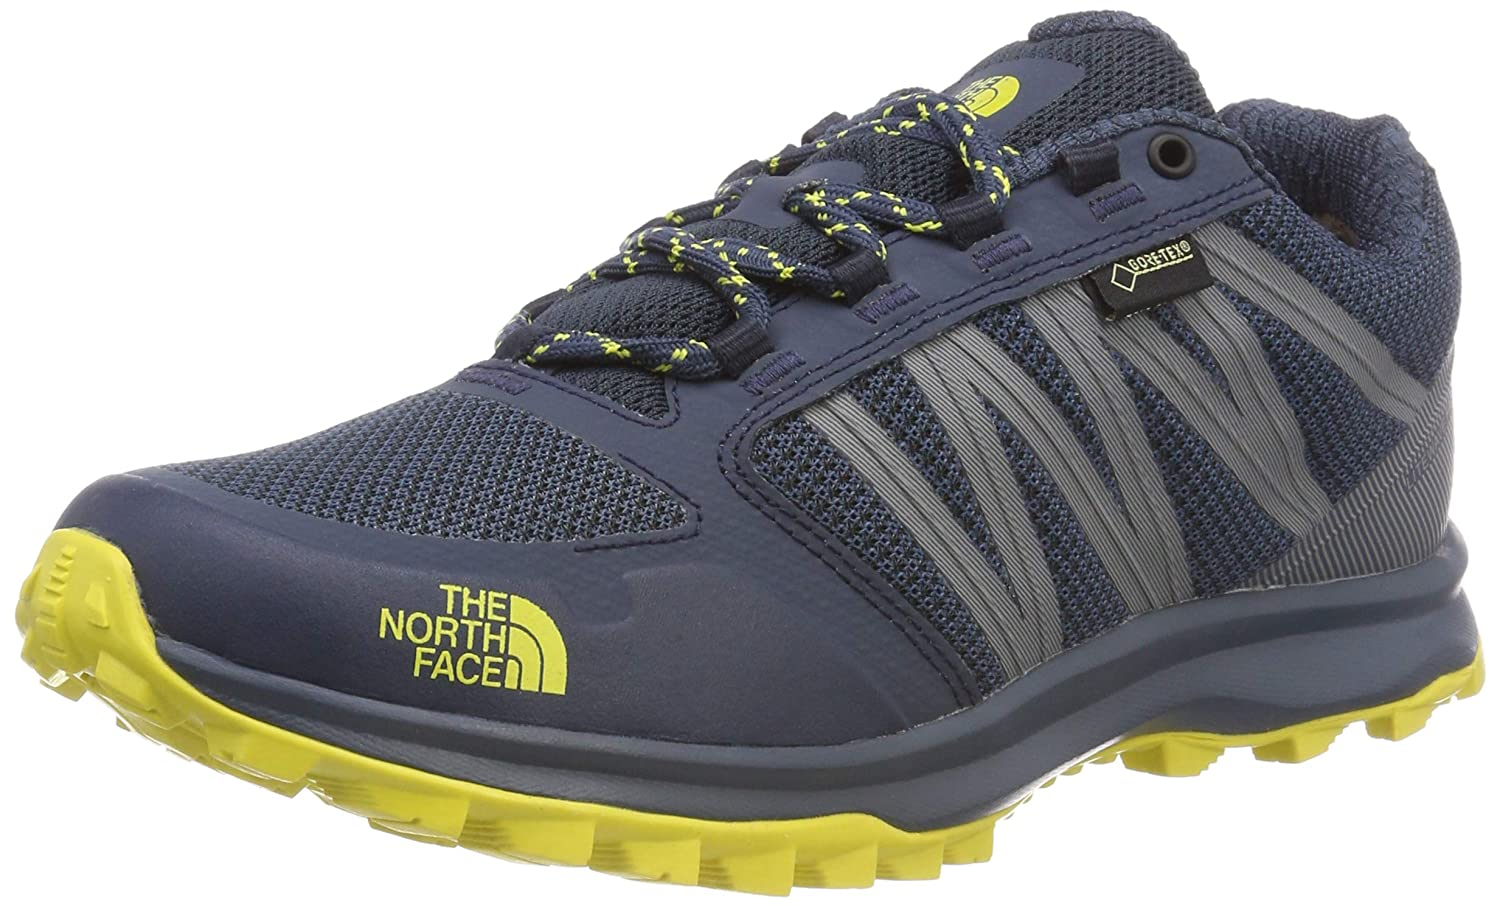 TALLA 41 EU. The North Face Litewave Fastpack Gore-Tex, Zapatillas de Senderismo para Hombre